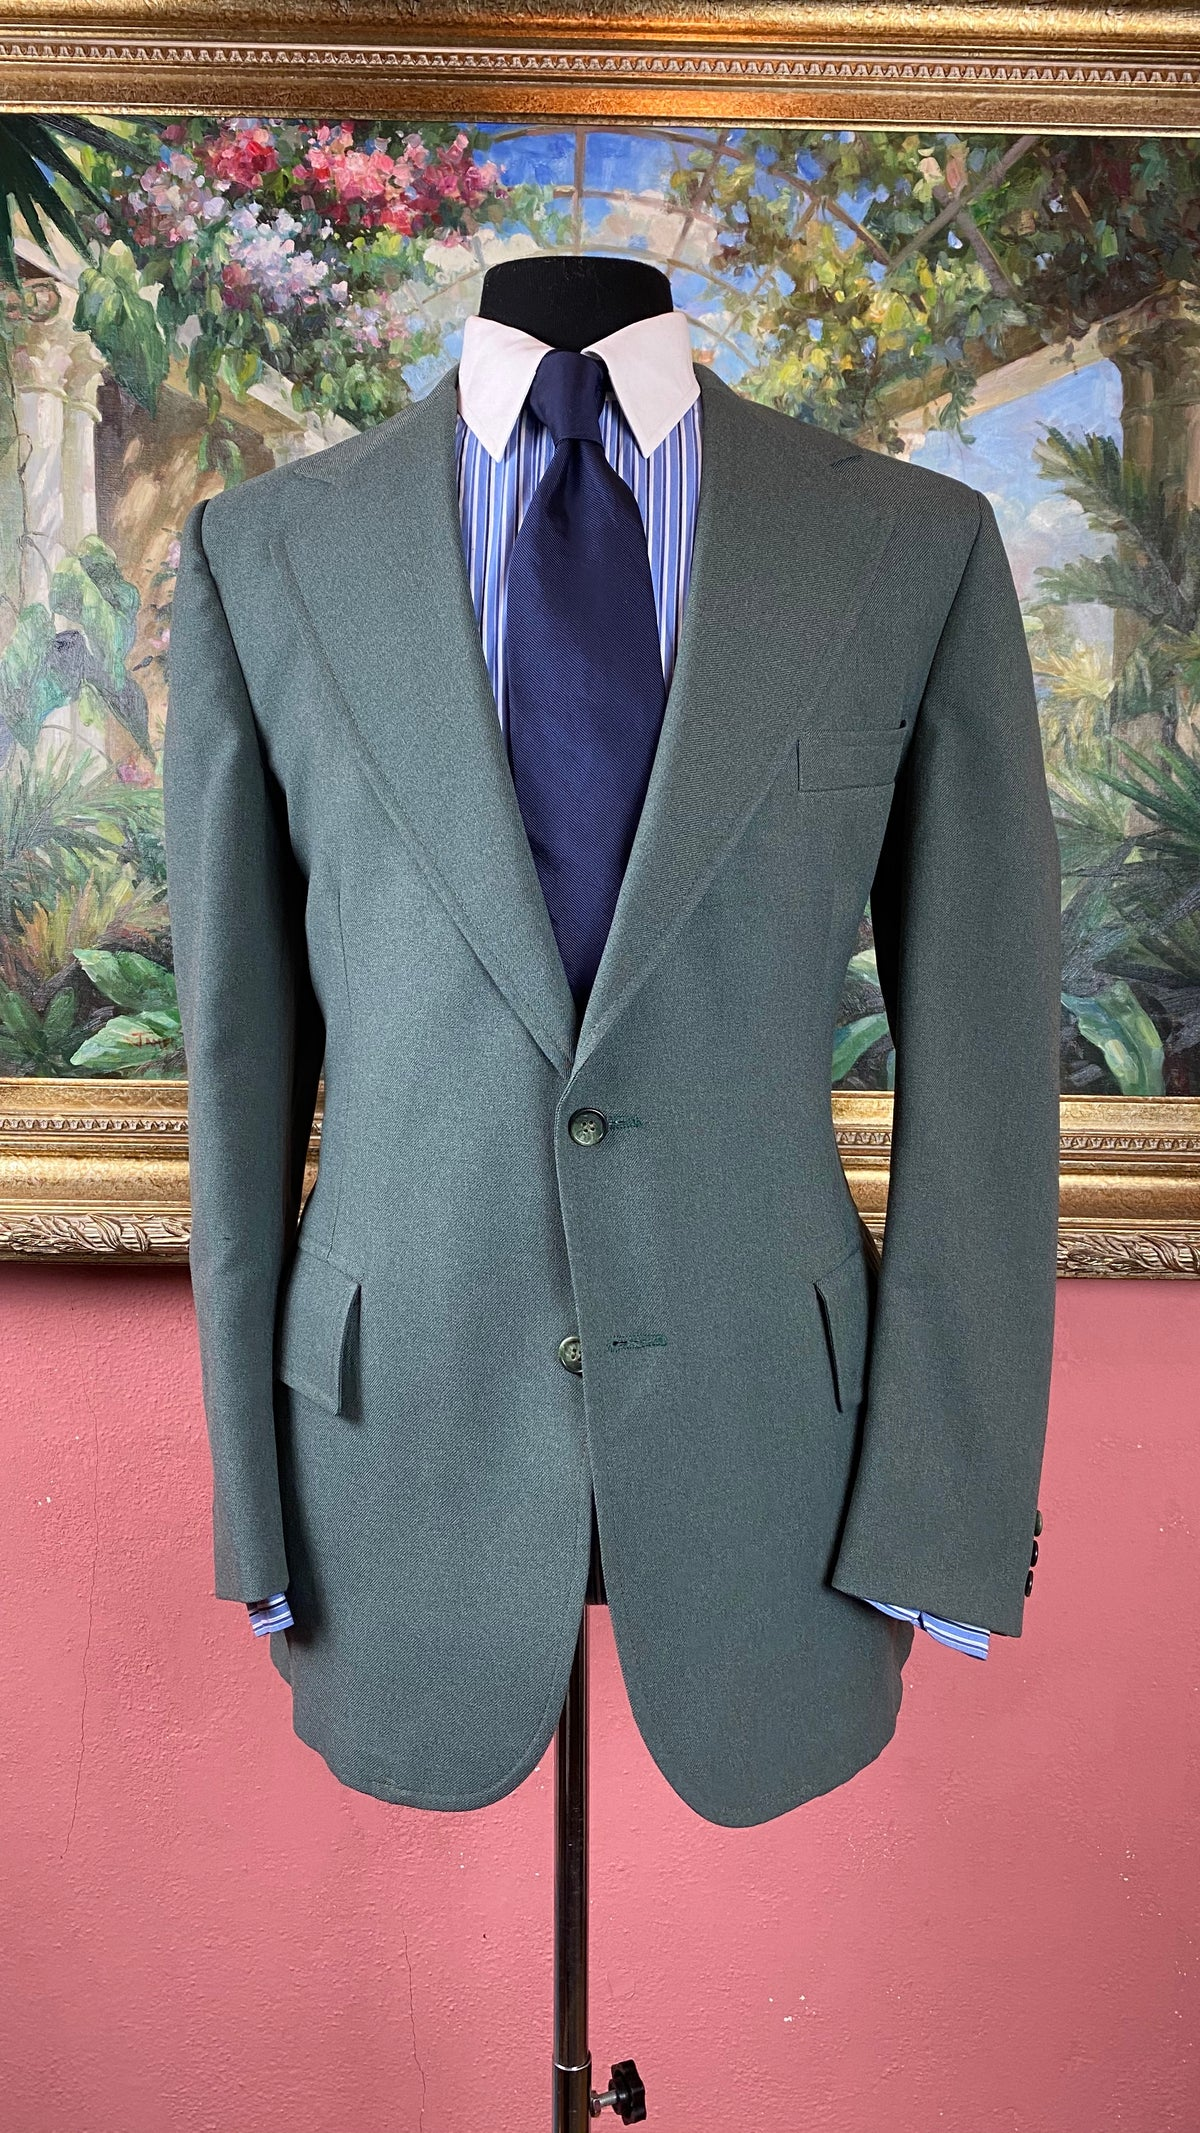 Image of VTG Dark Mint Green Suit